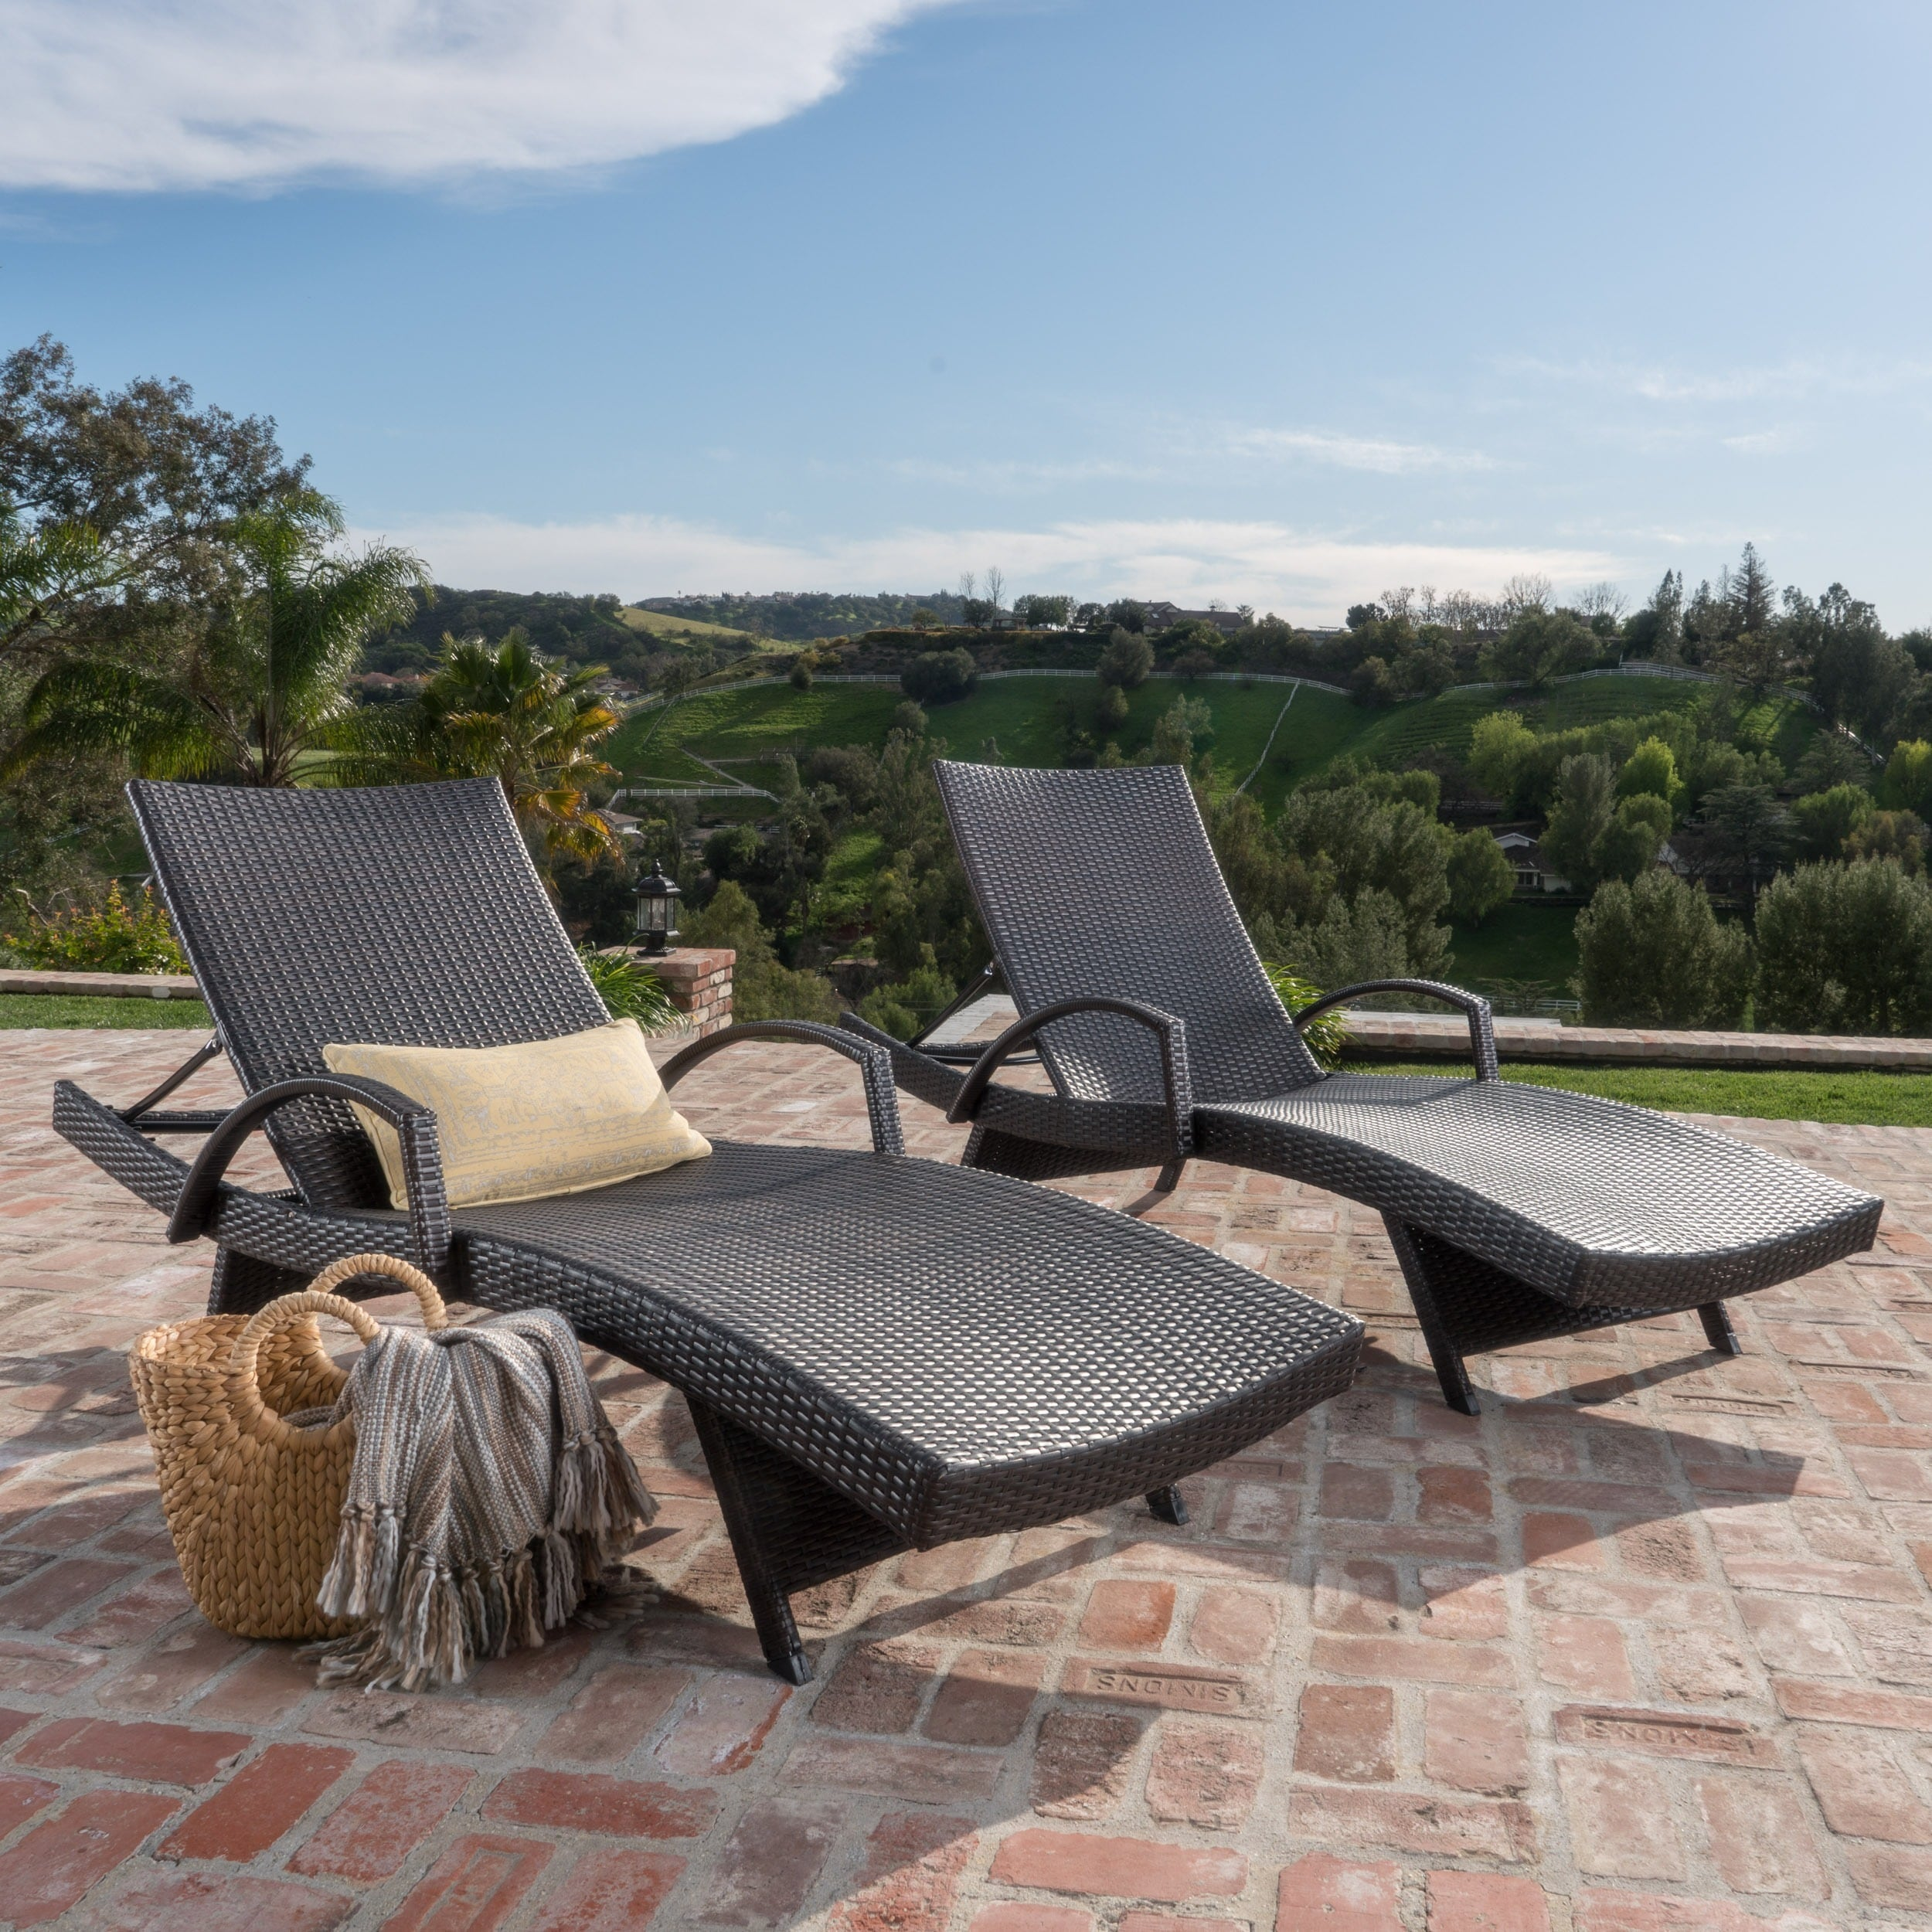 Sensational Toscana Outdoor Wicker Armed Chaise Lounge Chair Set Of 2 By Christopher Knight Home Caraccident5 Cool Chair Designs And Ideas Caraccident5Info